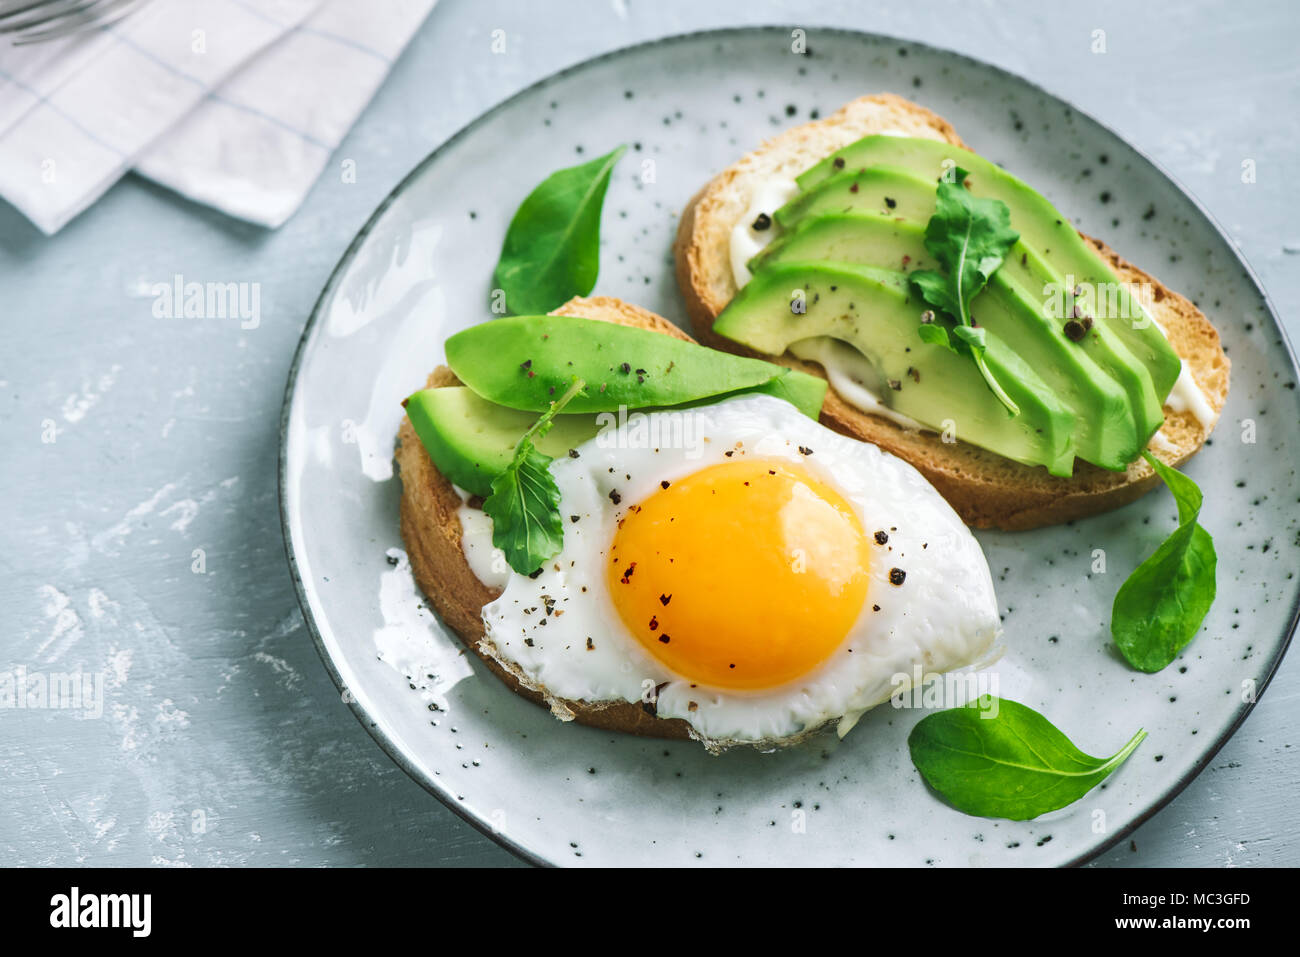 Avocado Sandwich with Fried Egg - sliced avocado and  egg on toasted bread with arugula for healthy breakfast or snack. - Stock Image